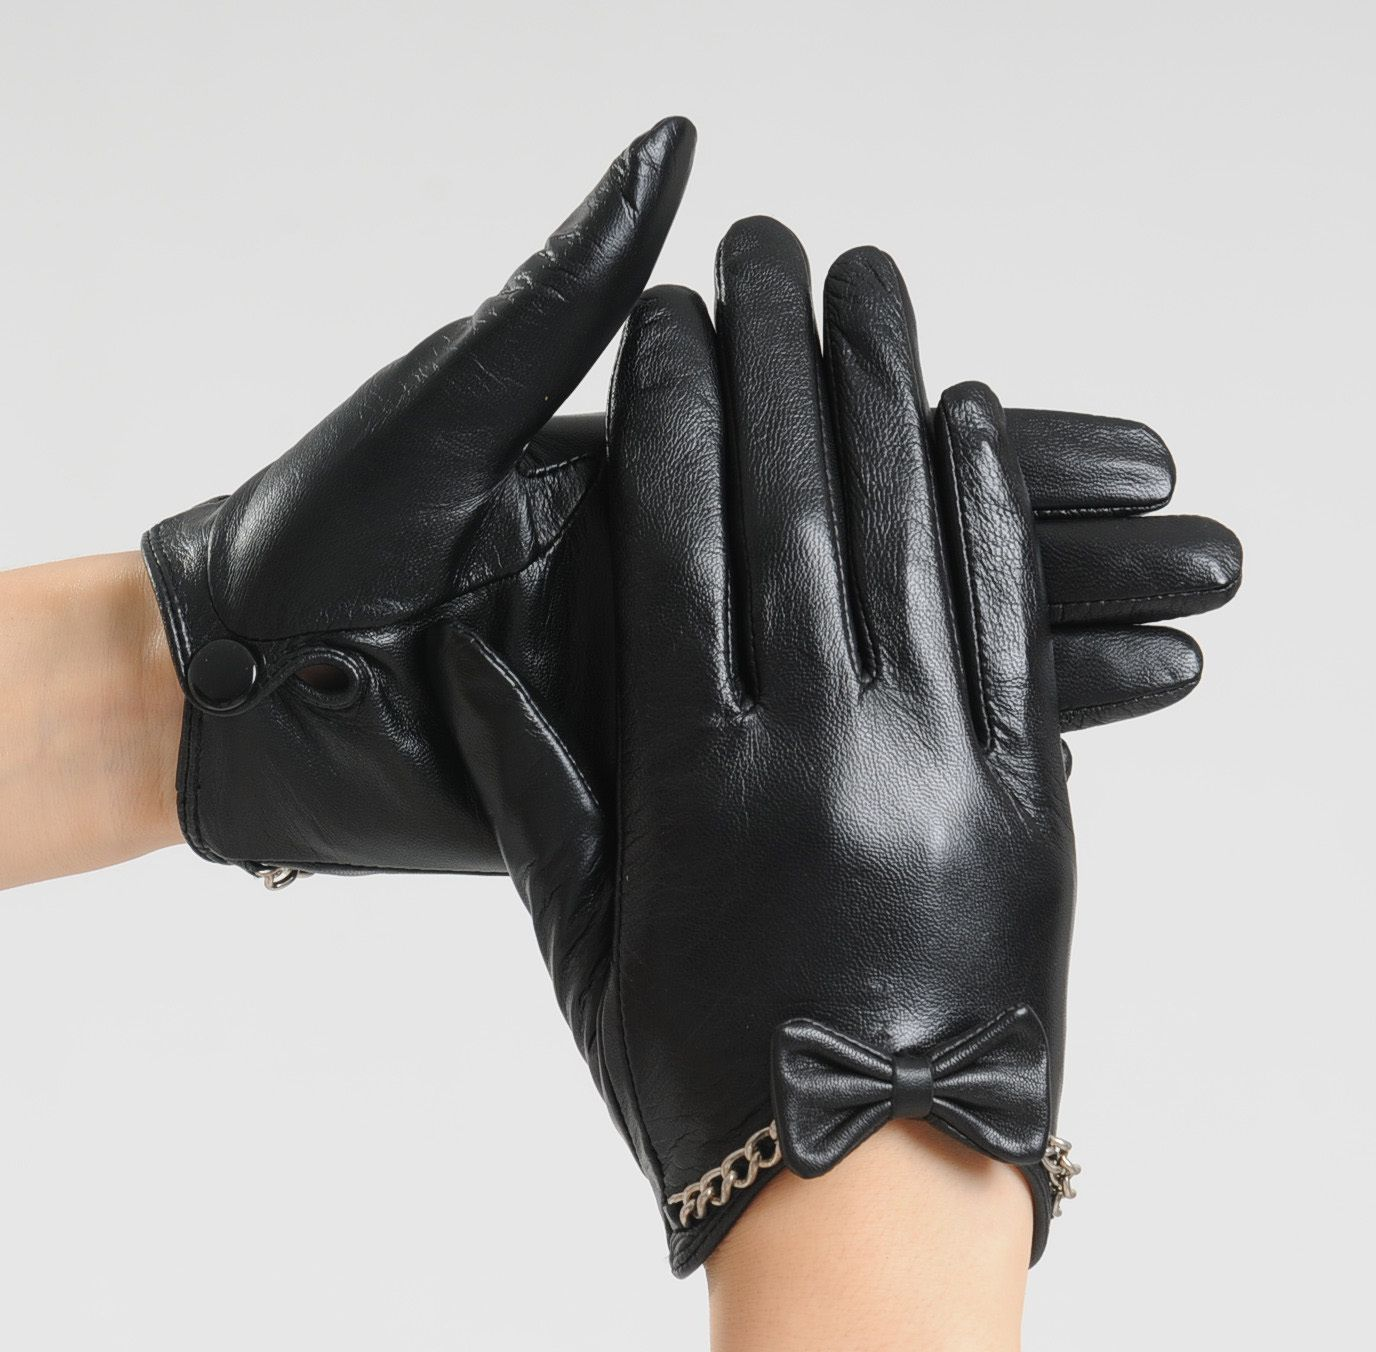 John lewis ladies black leather gloves - Leather Gloves Women Yahoo Image Search Results